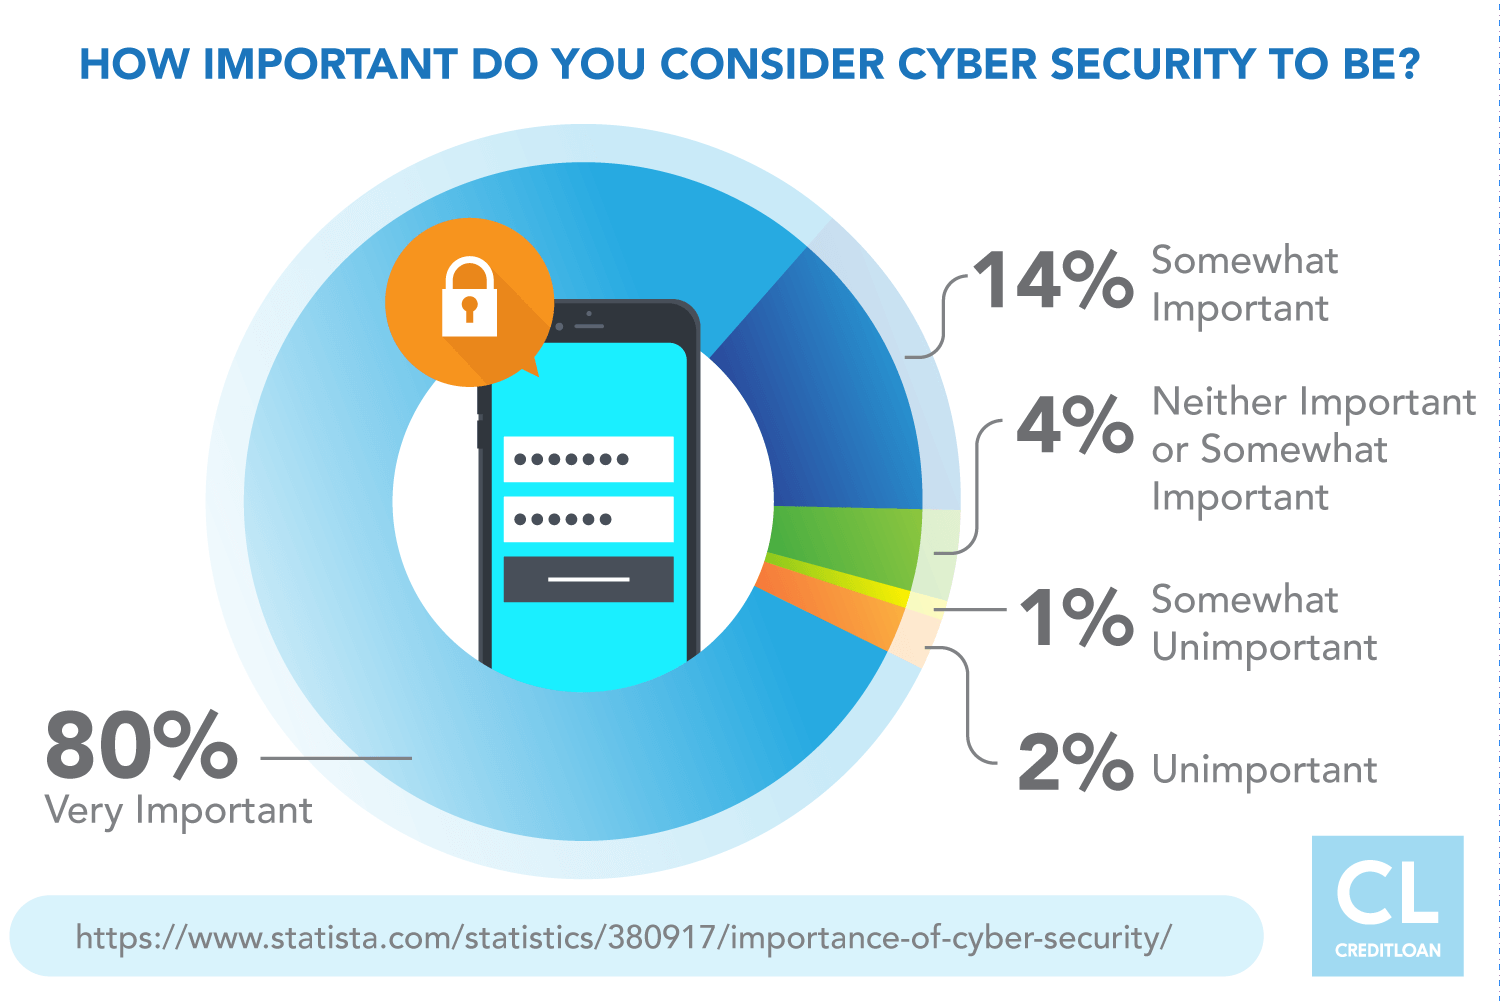 Importance of Cyber Security to Americans 2017